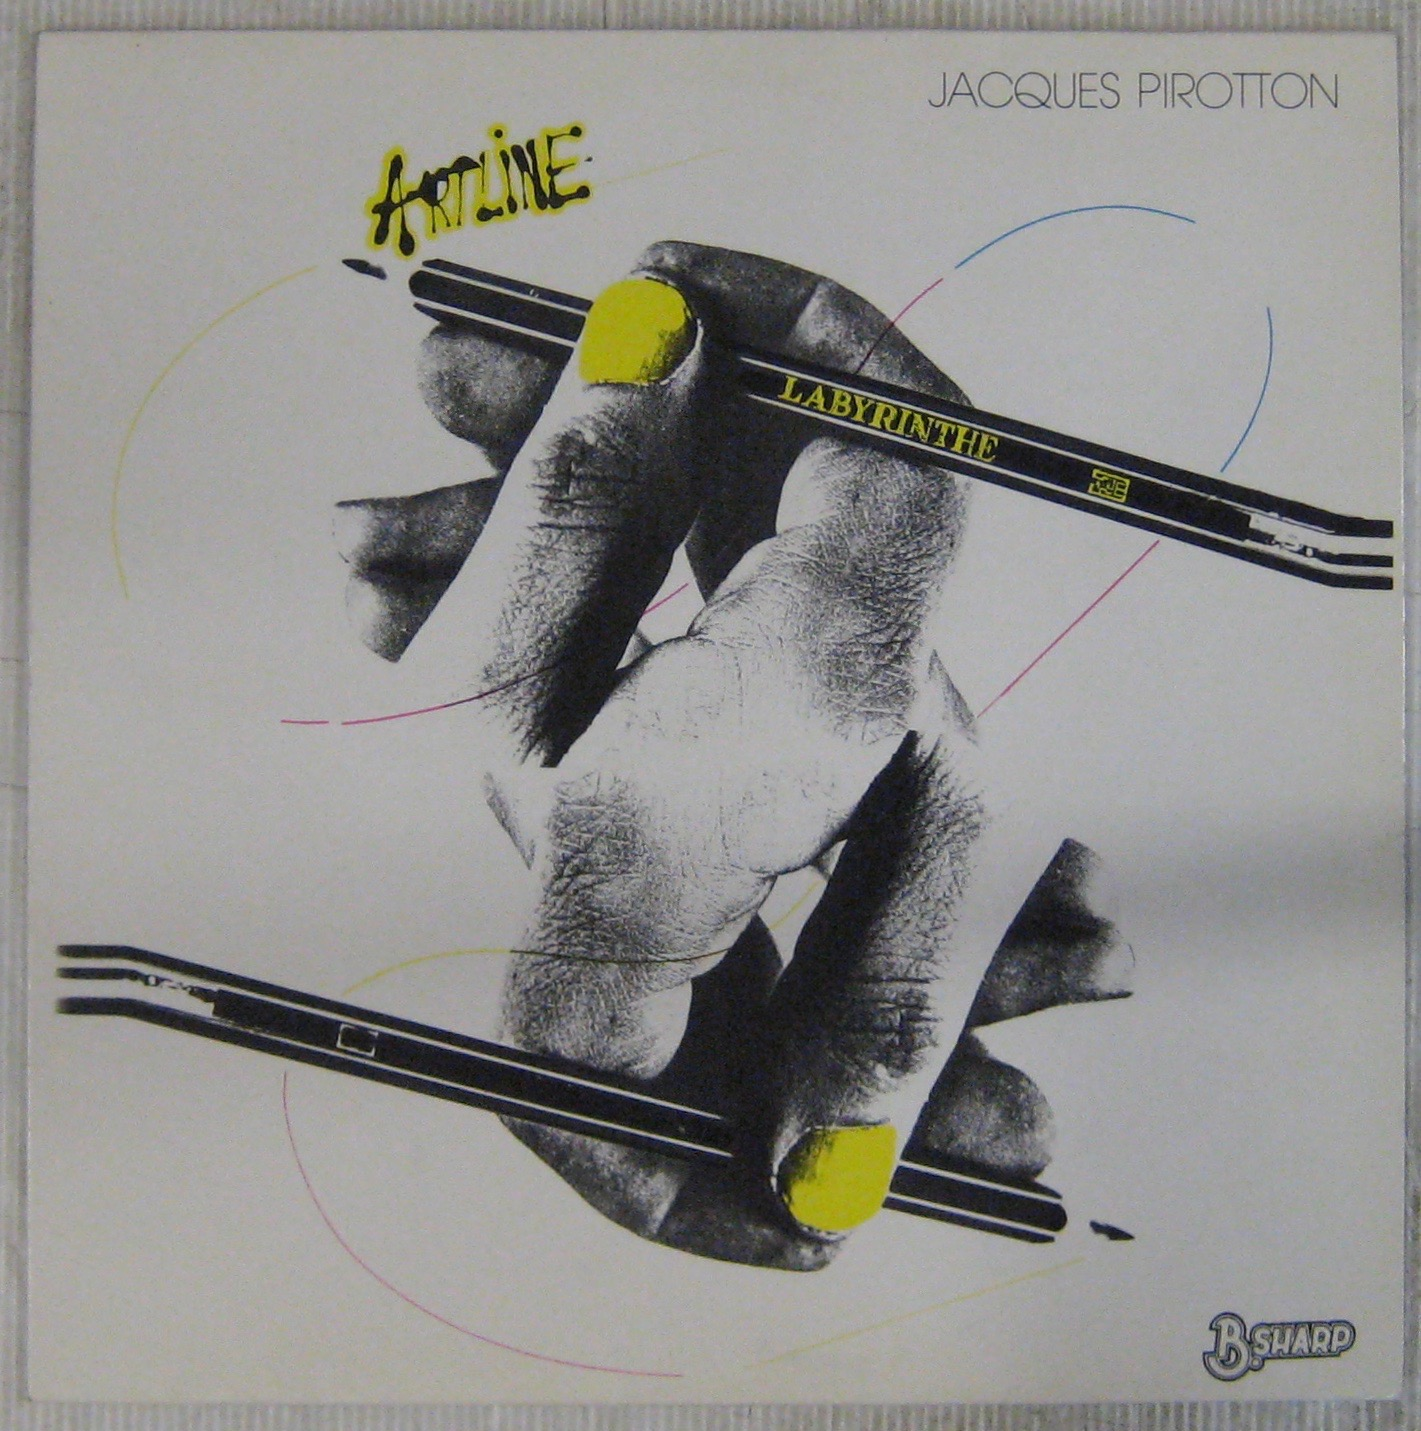 PIROTTON JACQUES - Artline - LP